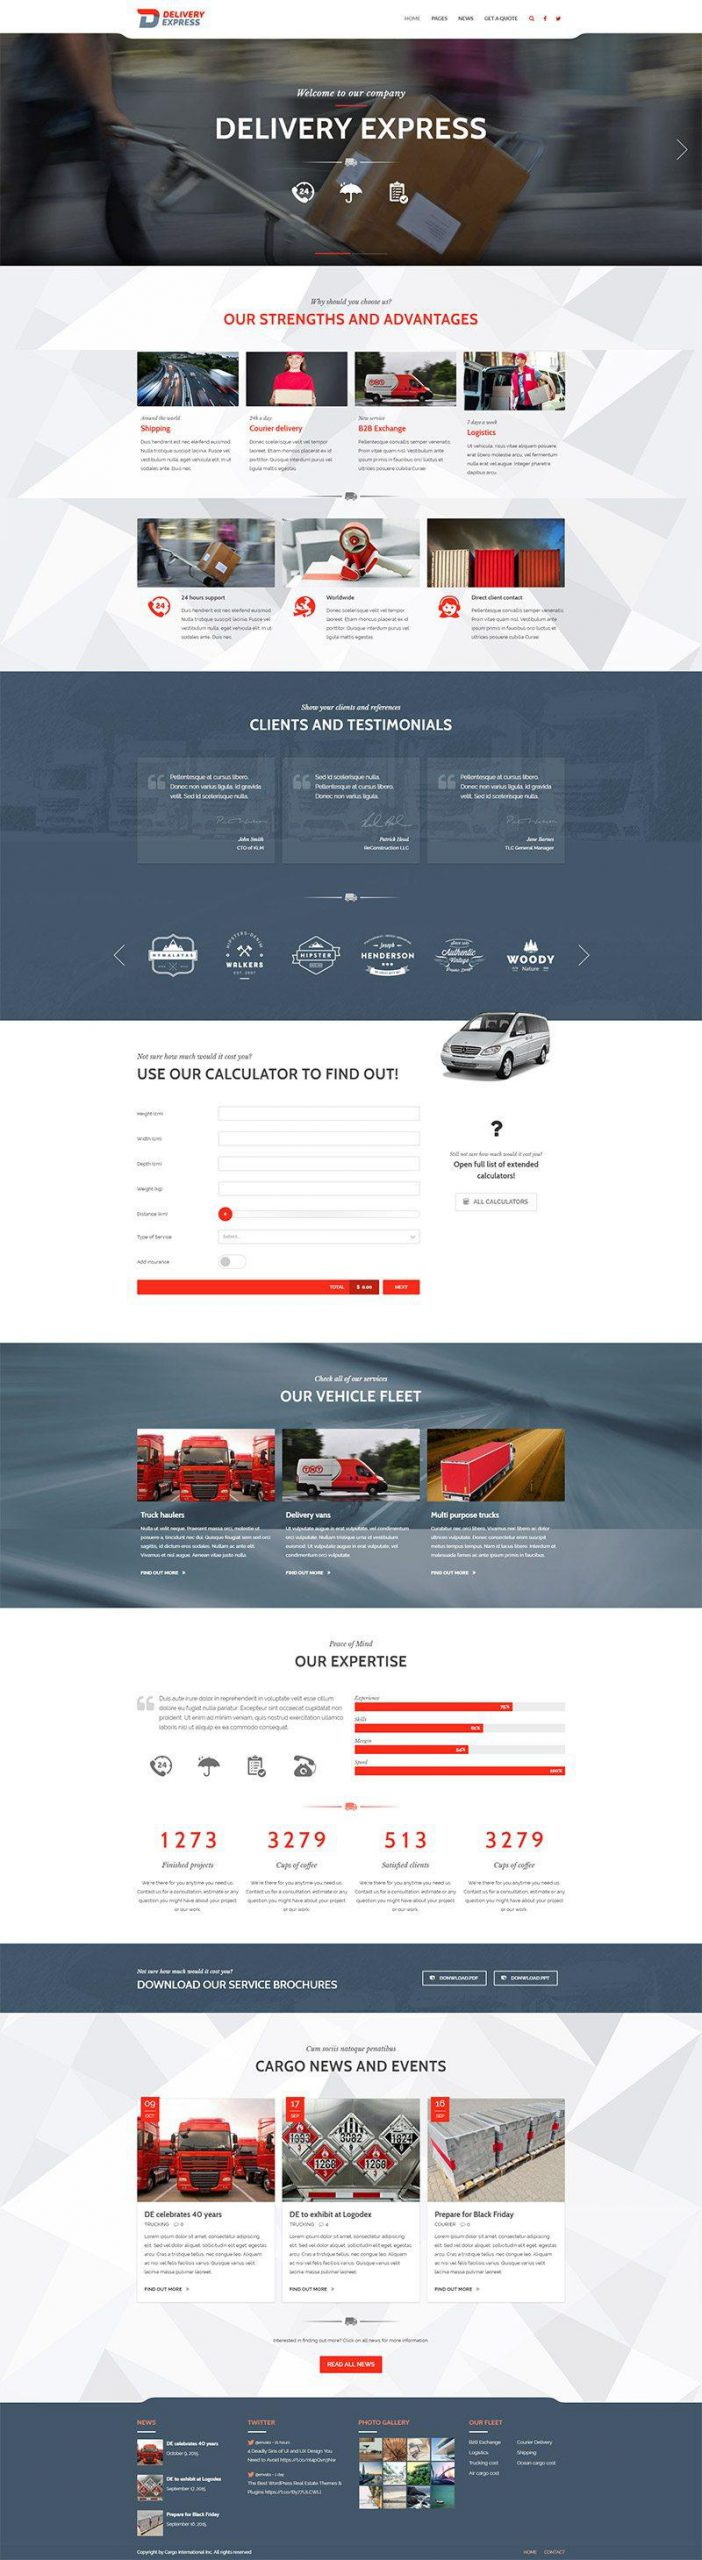 Giao diện website doanh nghiệp Cargo